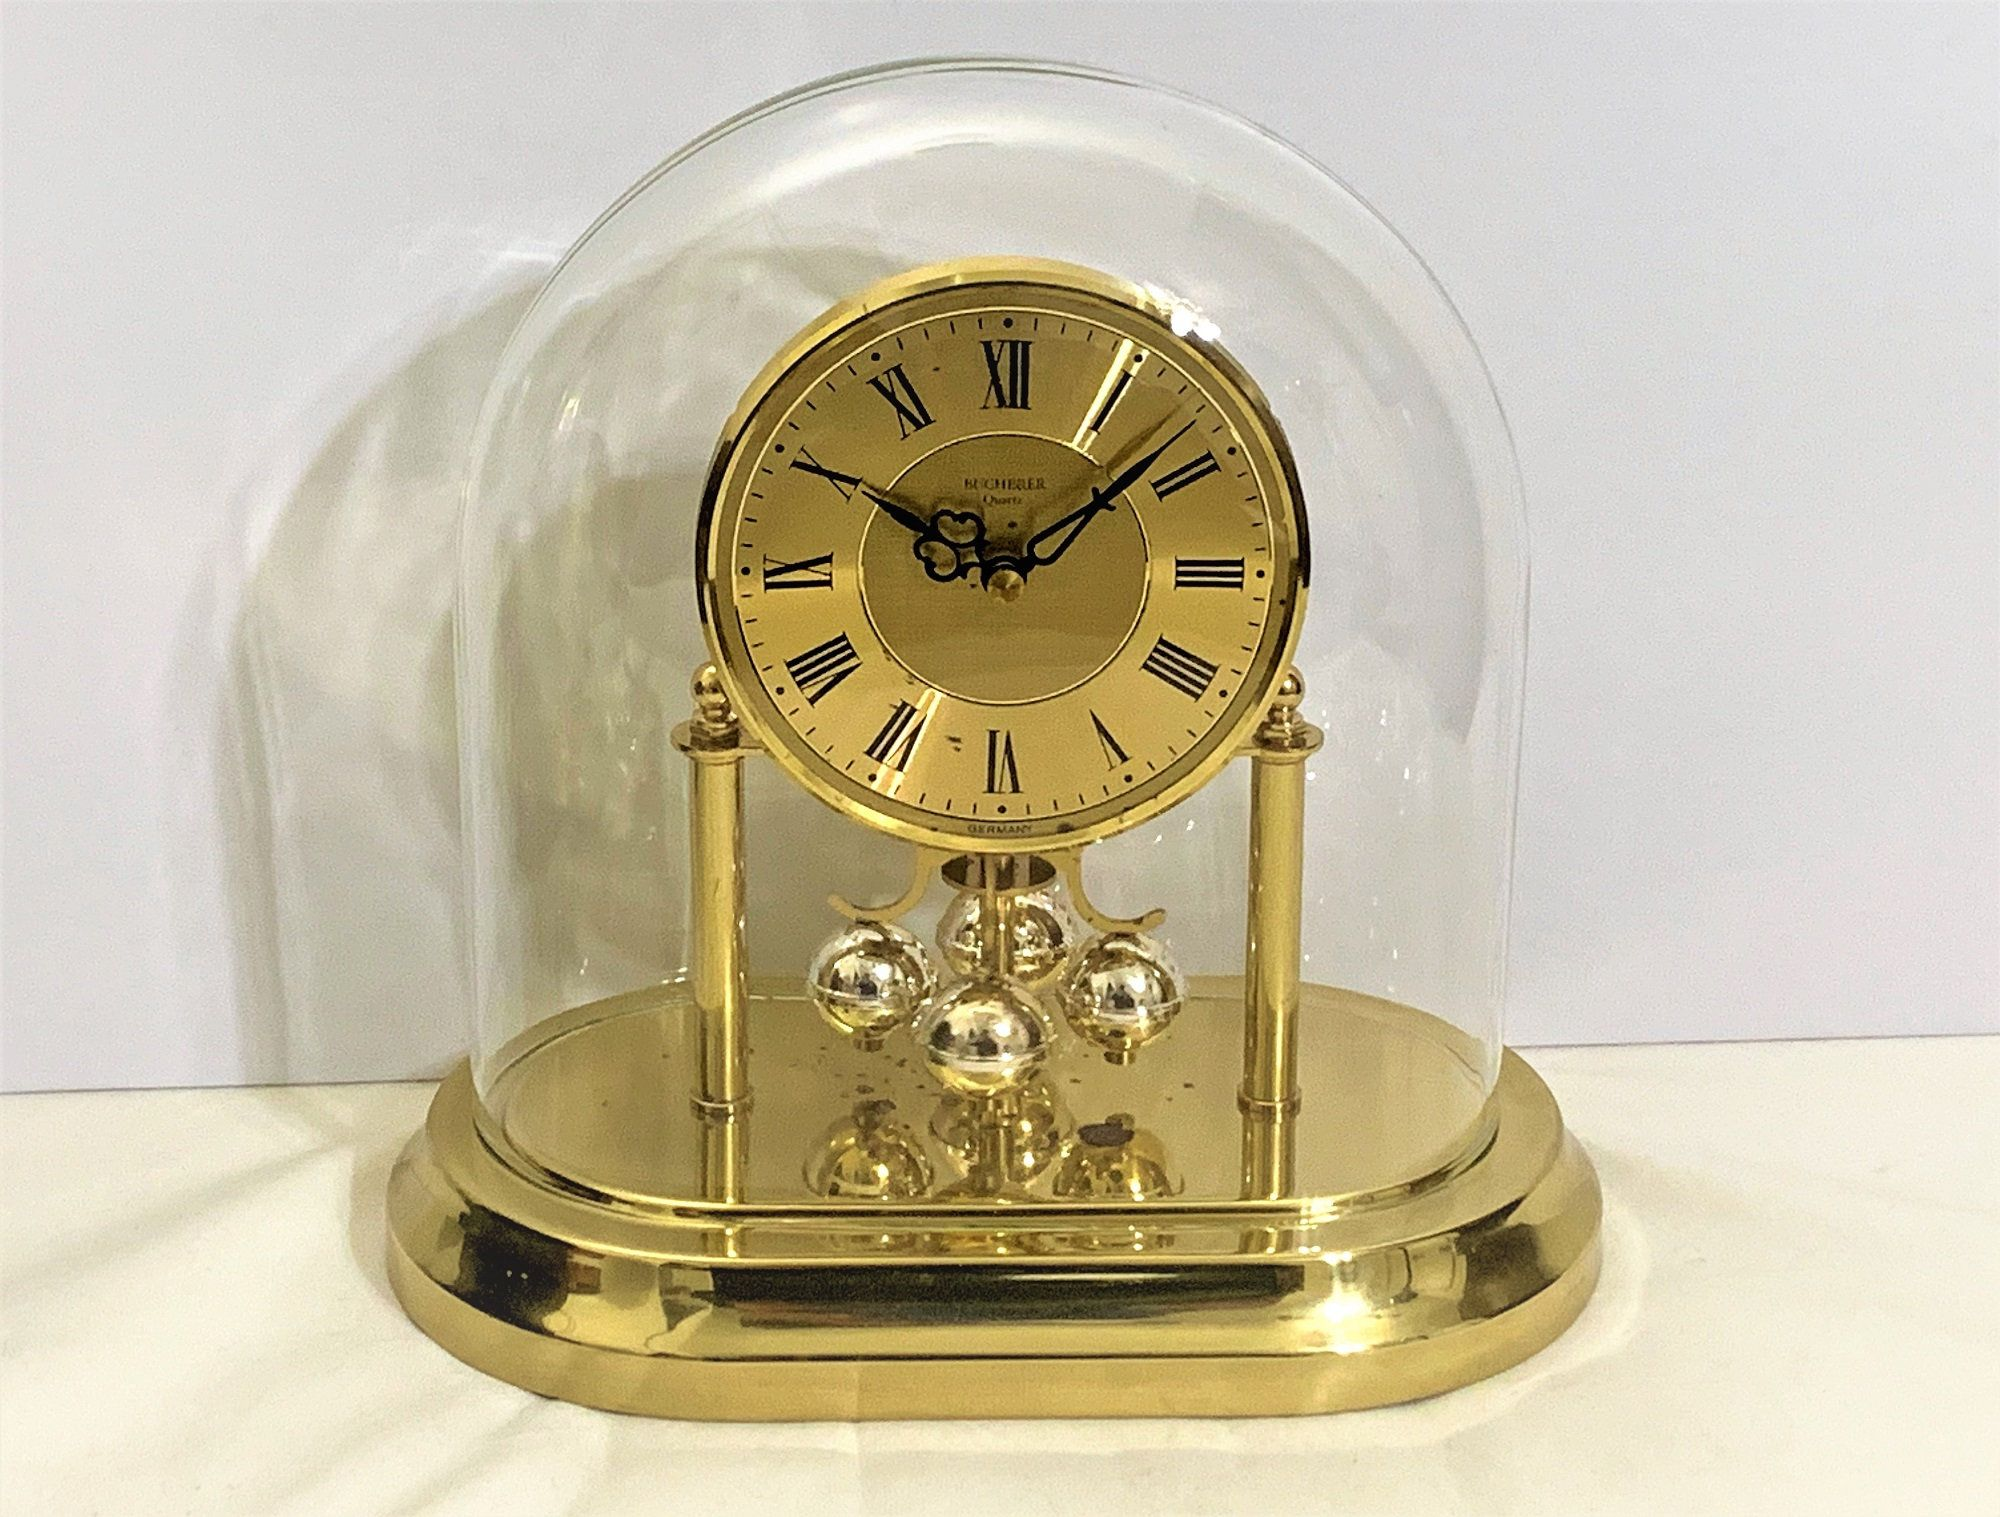 Vintage Bucherer Germany Anniversary Clock Special Le Coultre Wide Dome Edition Polished Brass 2 Tone Rotating Pendulu In 2020 Vintage Clock Clock Anniversary Clock